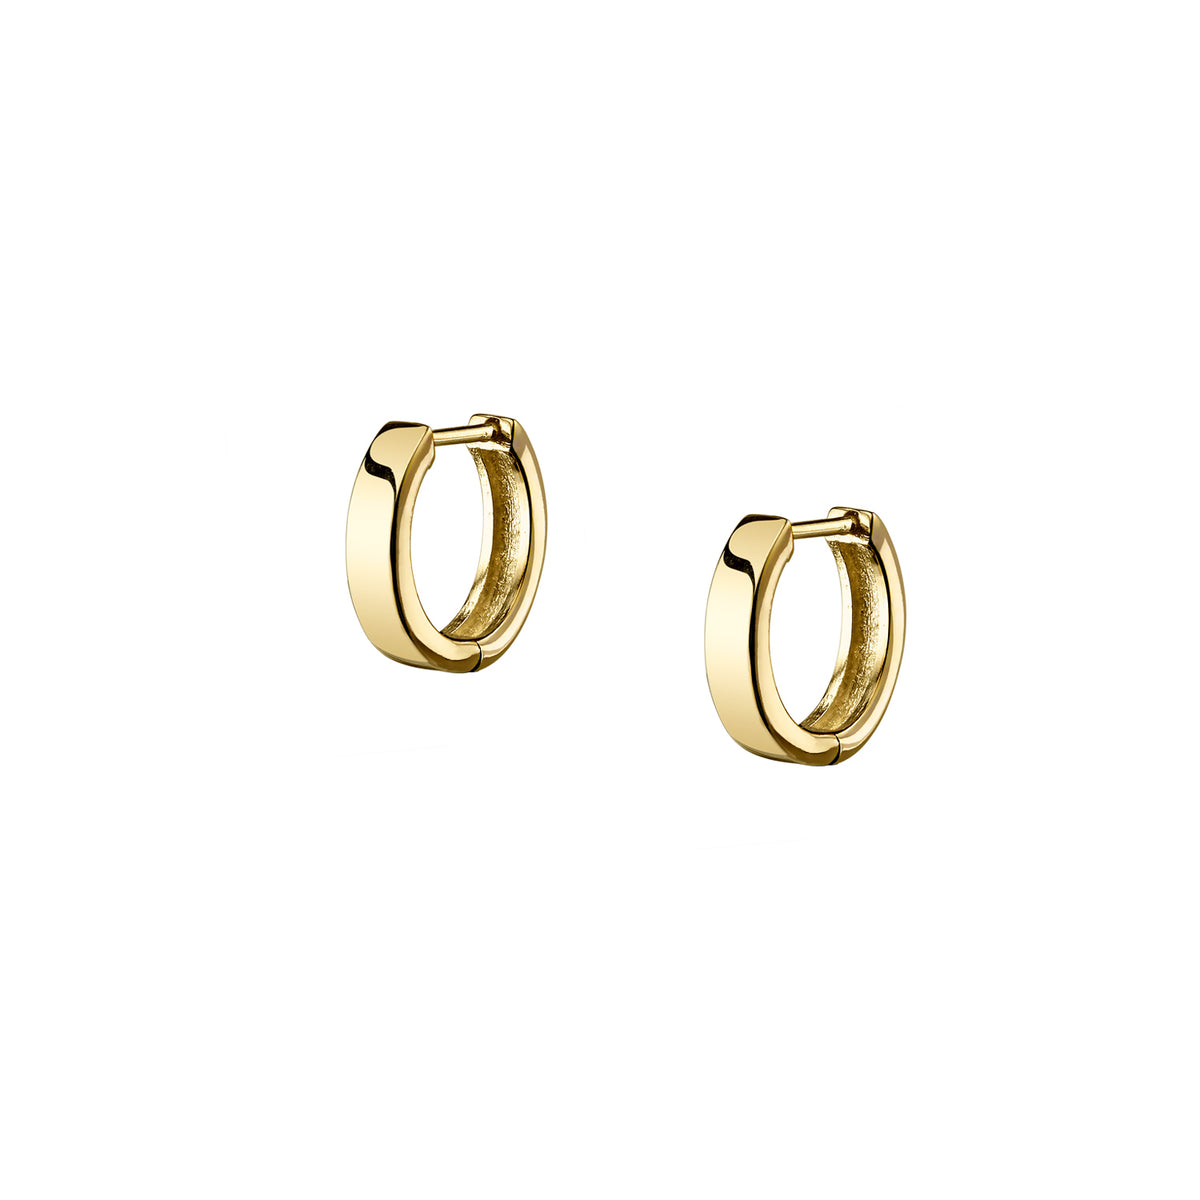 Are You Am I - Seni FINE Hoop Earrings